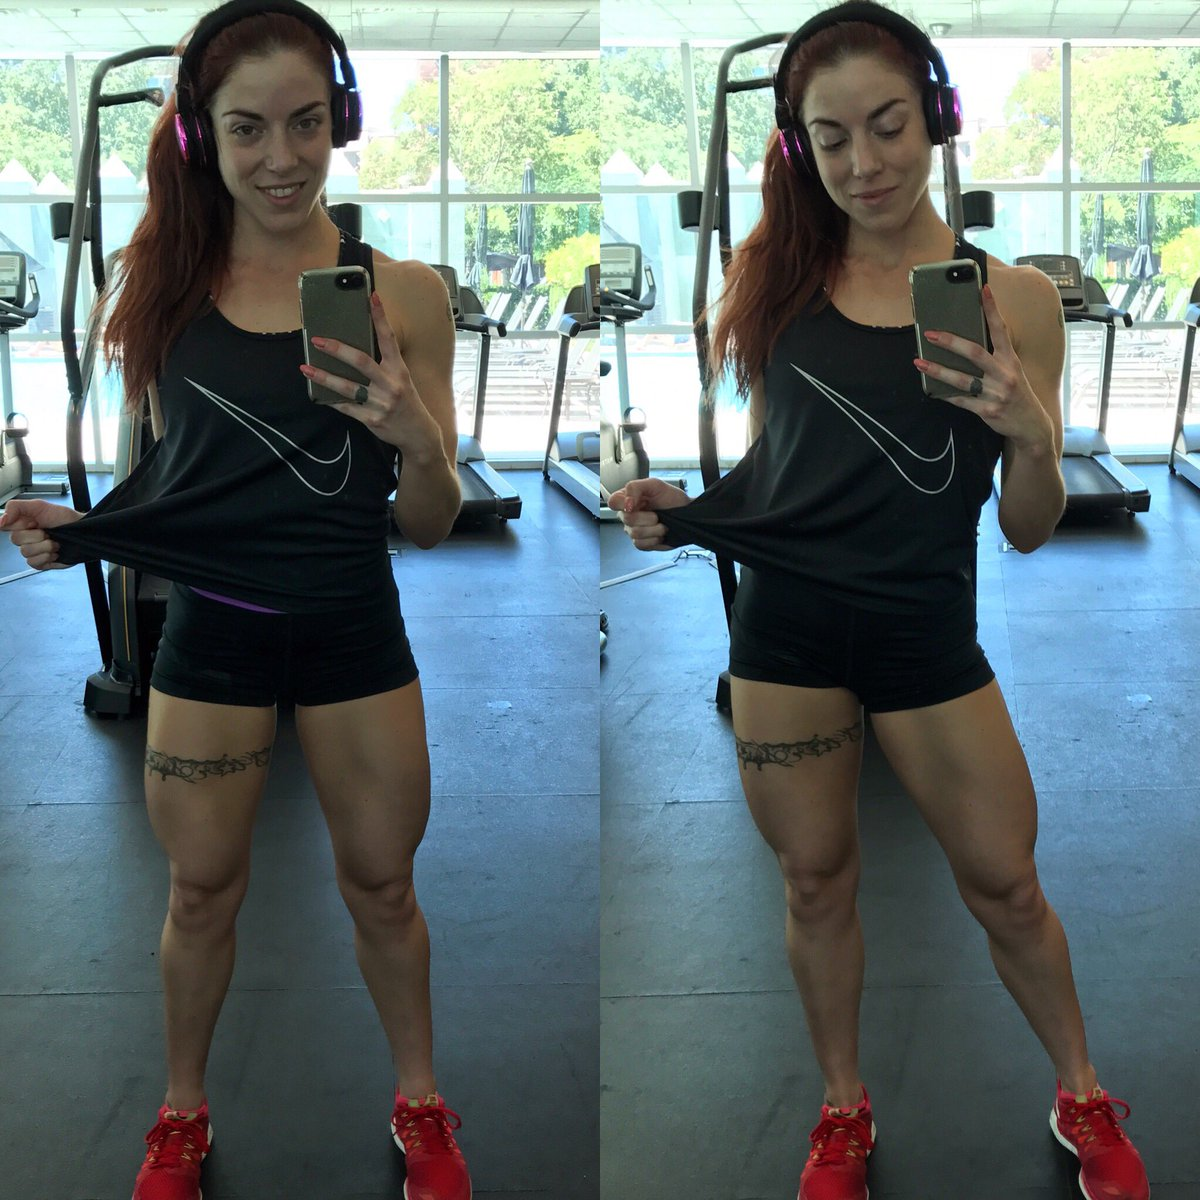 Quads popping for me after cardio! #fitness #quads #cardio #myfitstyle<br>http://pic.twitter.com/yYnxWcRCbg